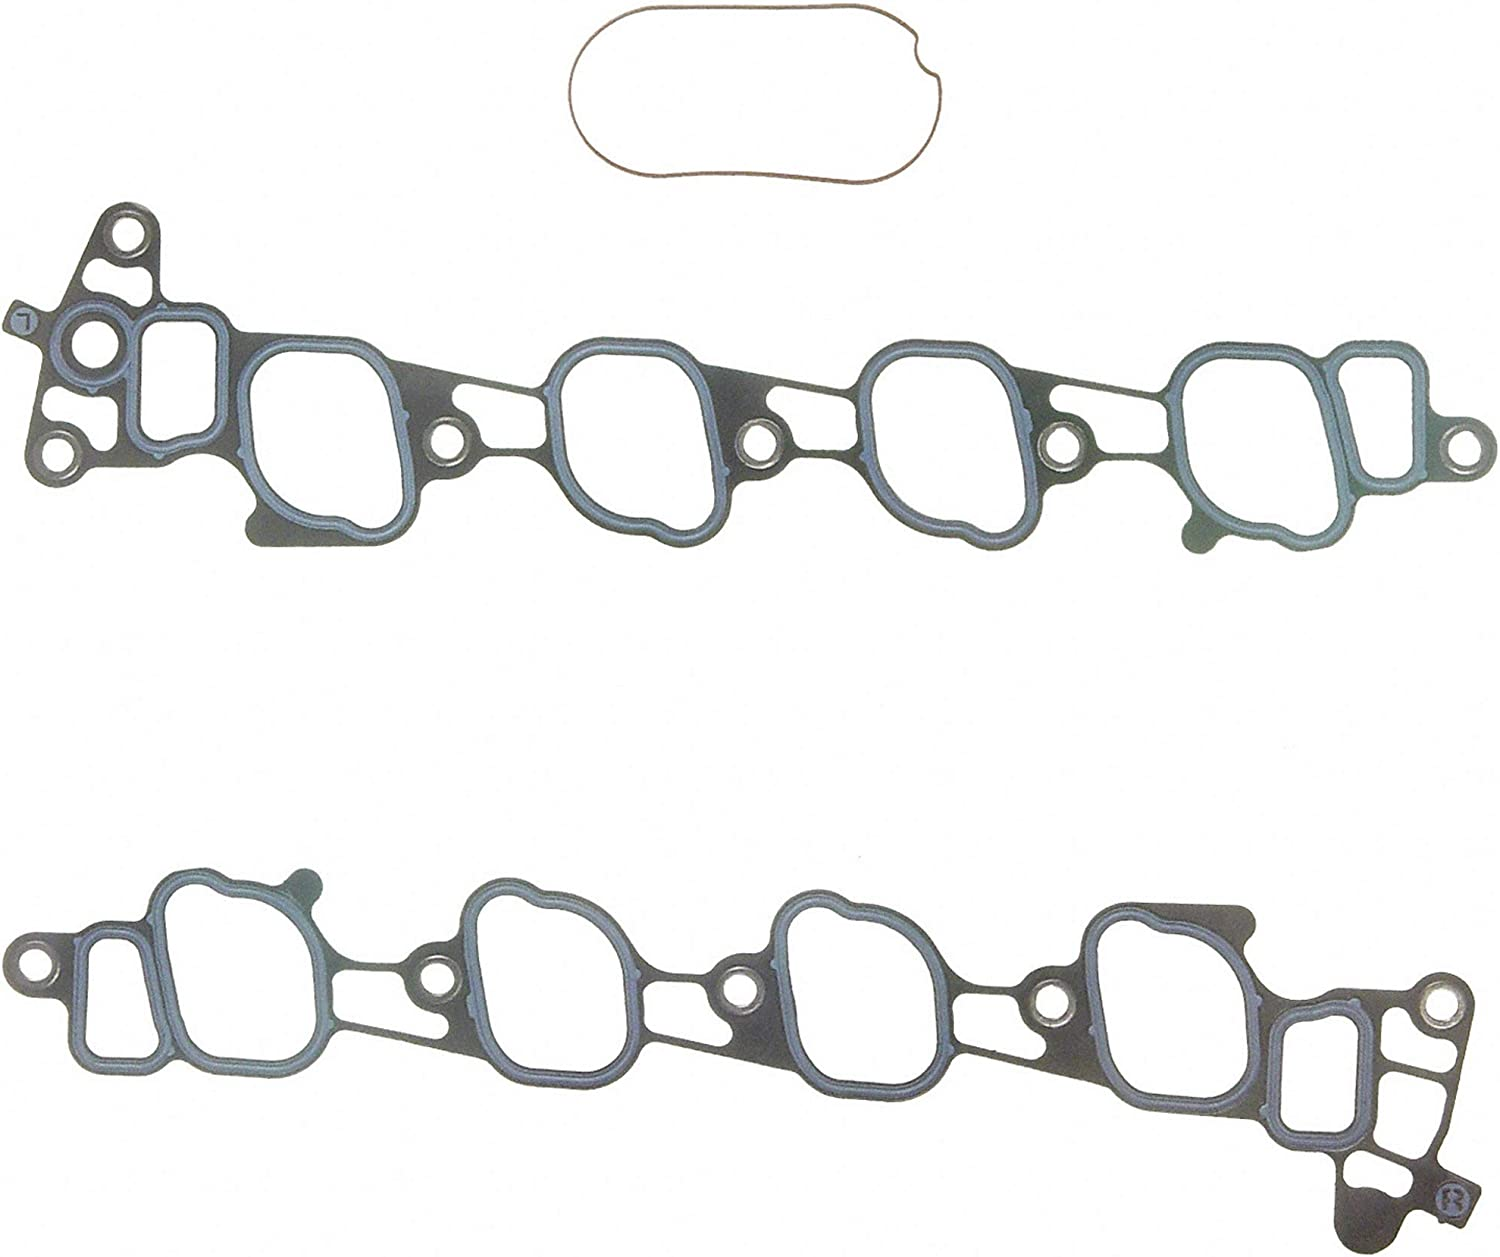 FEL-PRO MS New life 92836-1 Intake Gasket Set Limited time for free shipping Manifold